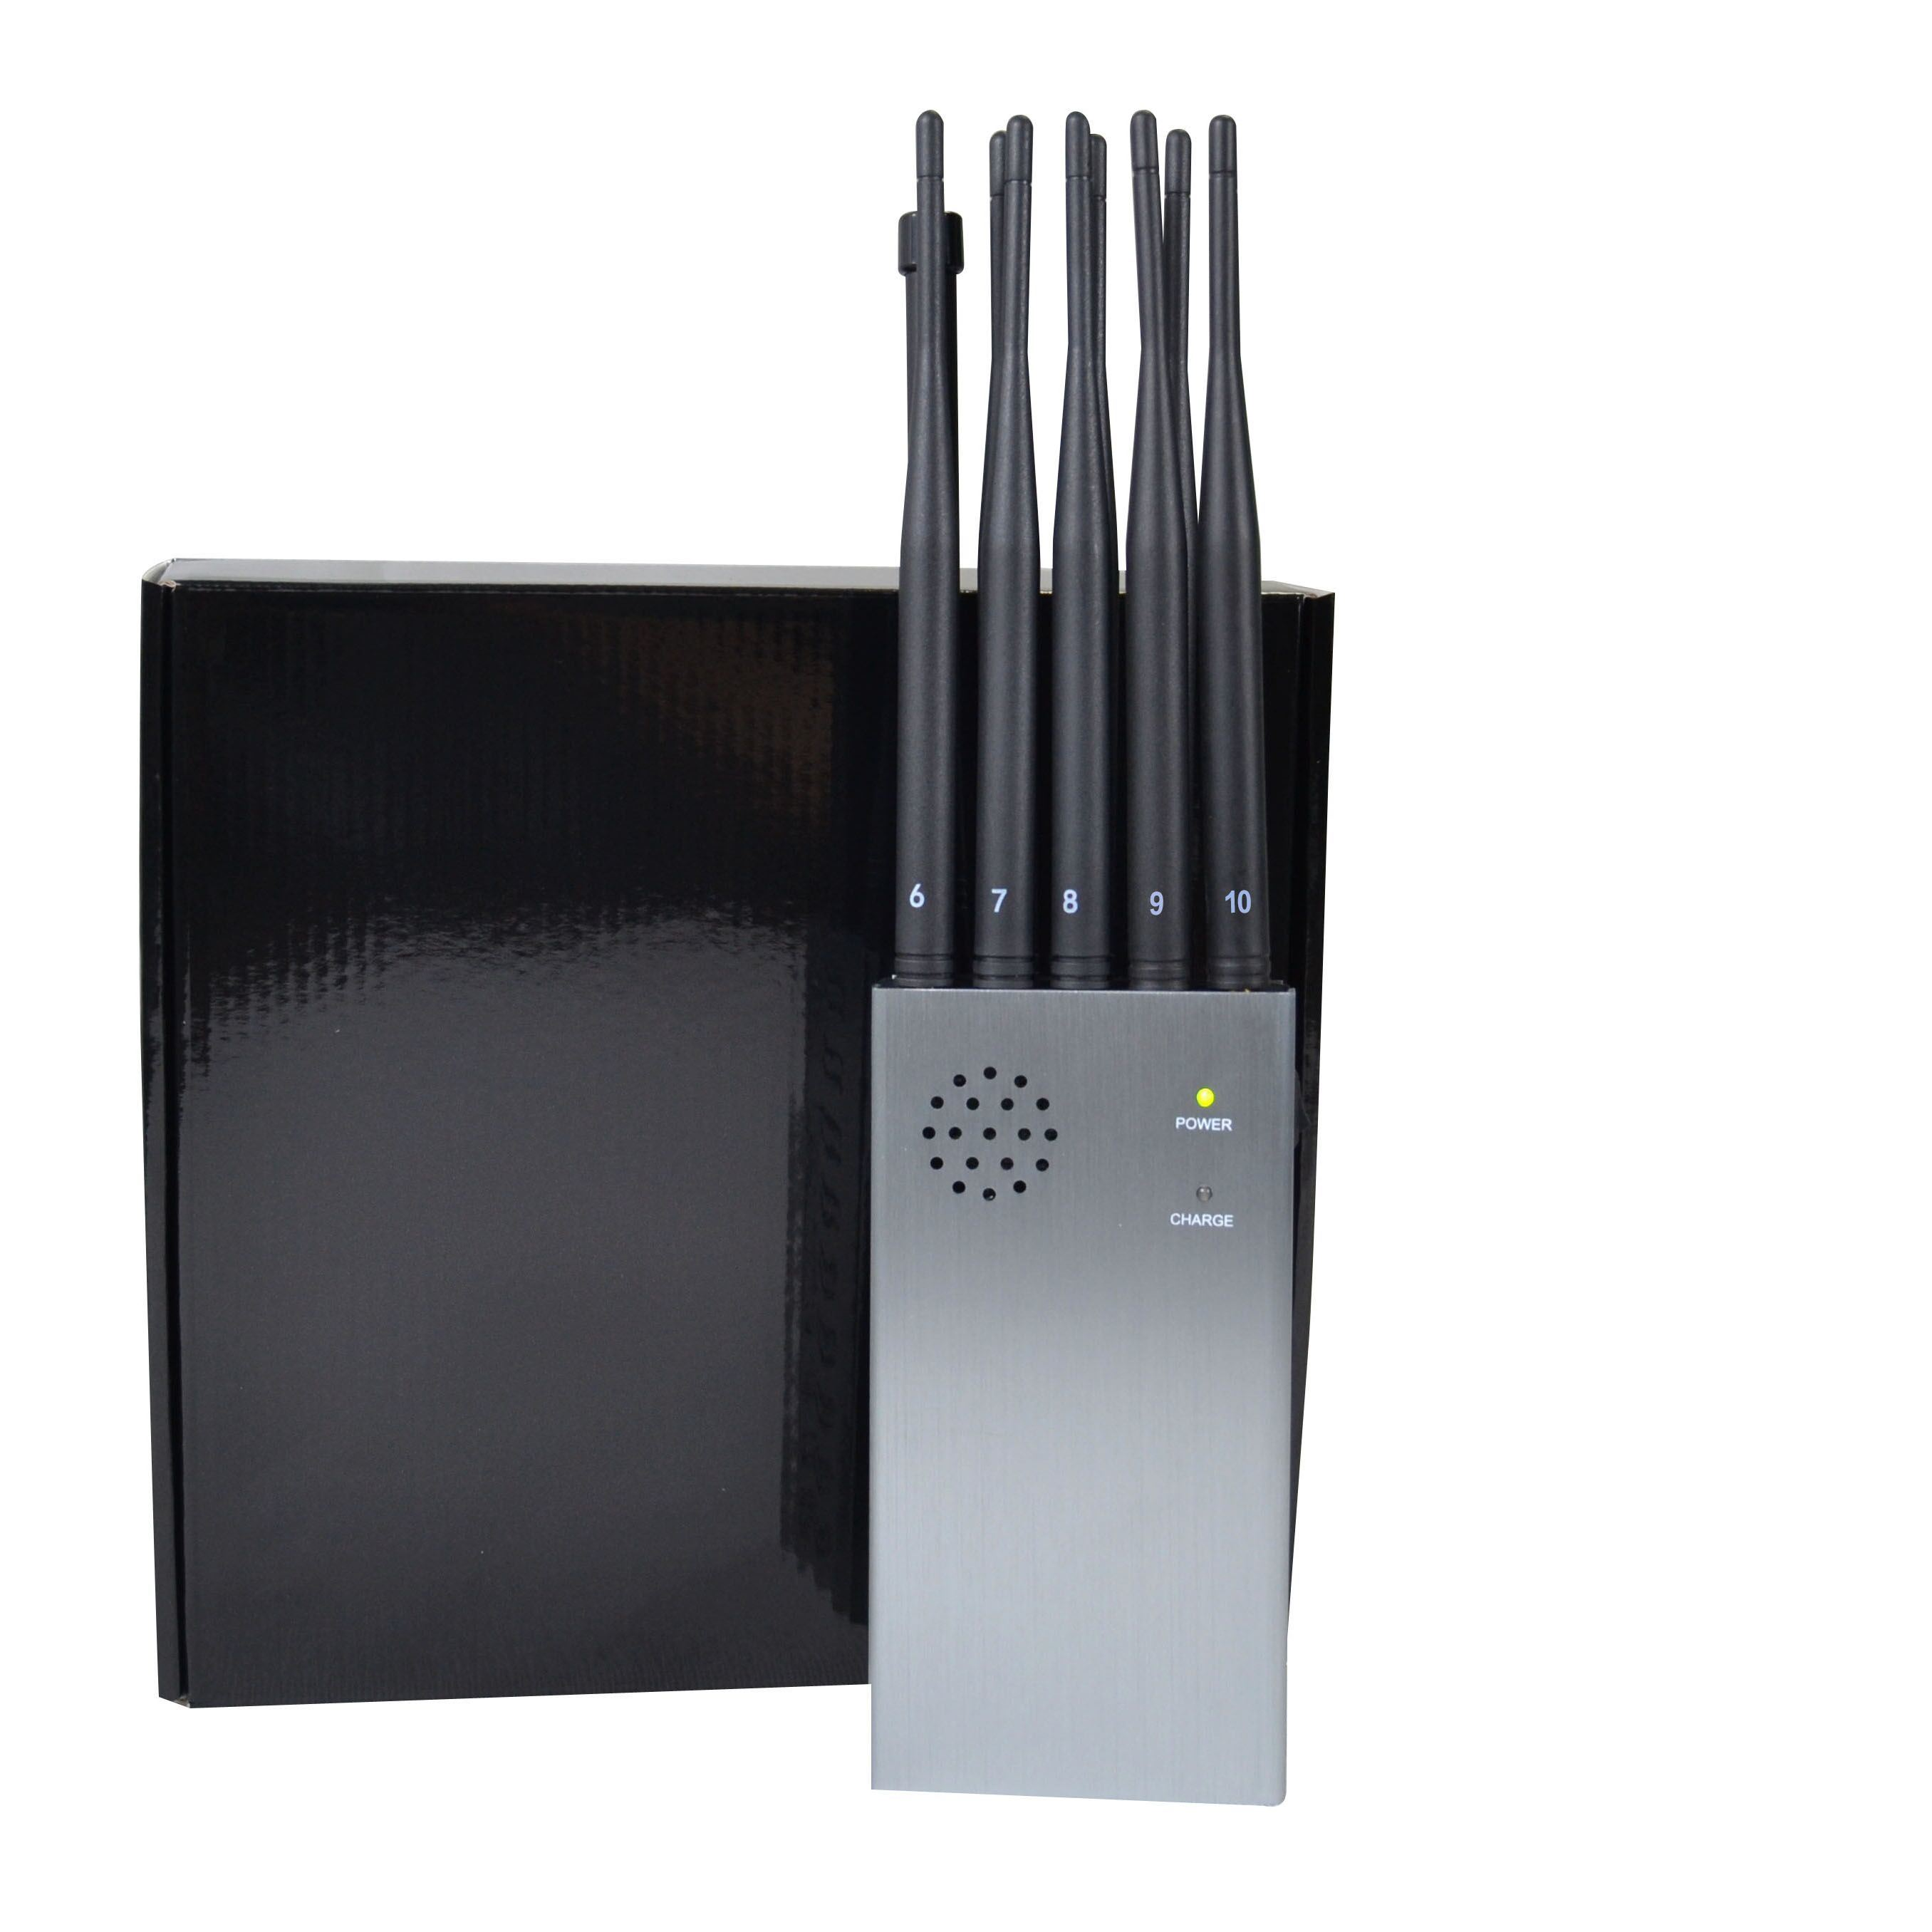 mobile phone blocker IA - China Handled Portable Jammer with 10 Antennas Newest Model Updated Version with 8000mA - China 8000mA Battery Jammer, Large Volume Power Signal Blocker